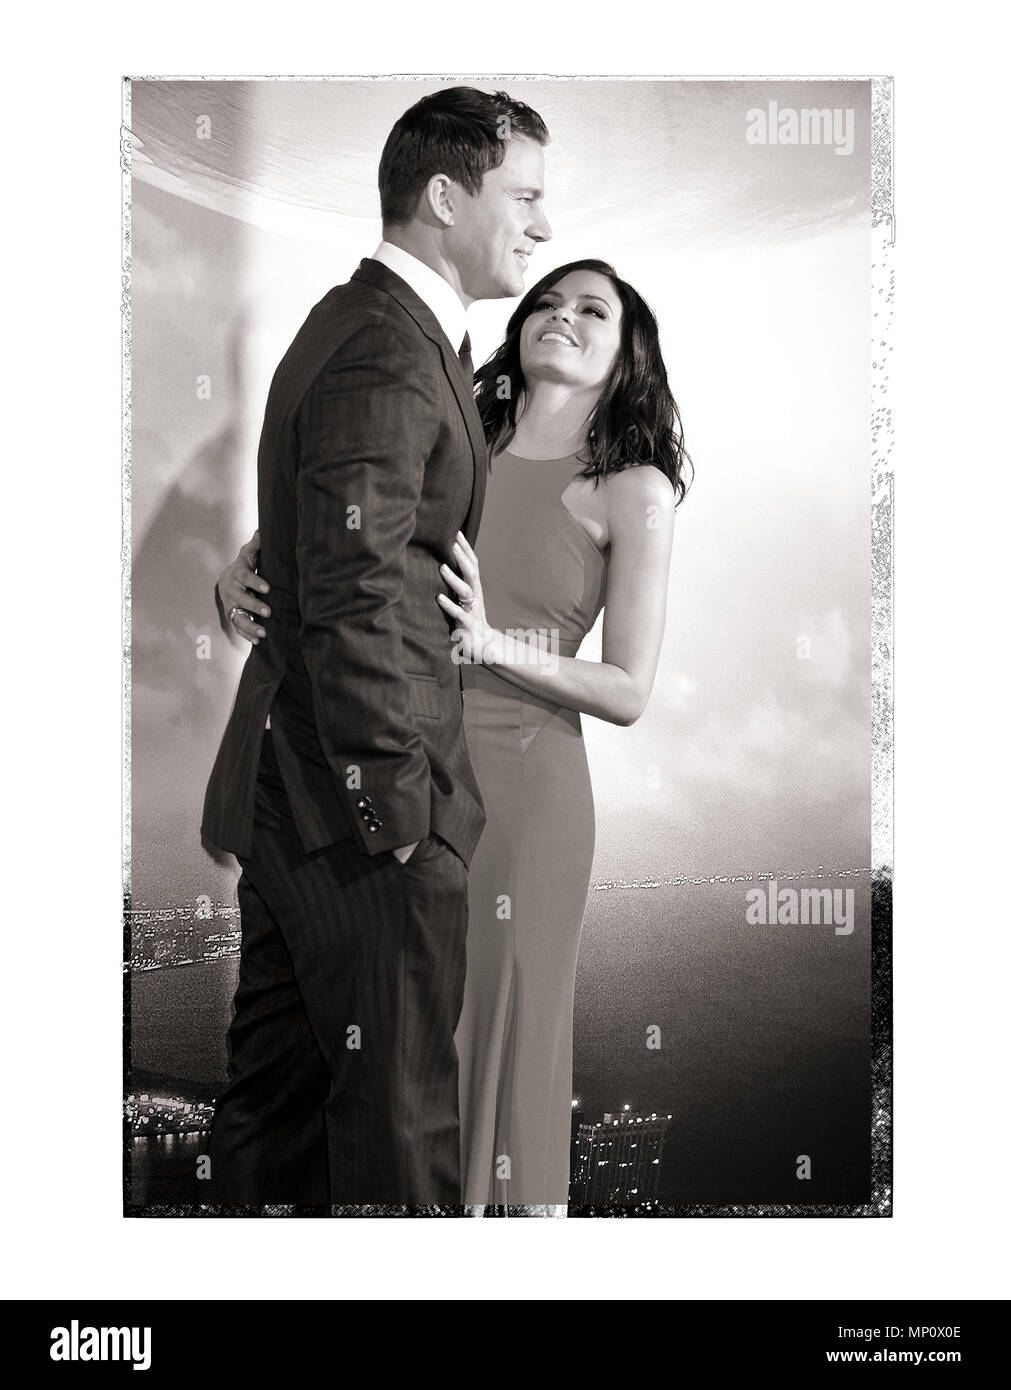 Channing Tatum and wife Jenna Dewan-Tatum  at the Jupiter Ascending Premiere at the TCL Chinese Theatre in Los Angeles. February 2, 2015.a_Channing Tatum and wife Jenna Dewan-Tatum  ------------- Red Carpet Event, Vertical, USA, Film Industry, Celebrities,  Photography, Bestof, Arts Culture and Entertainment, Topix Celebrities fashion /  Vertical, Best of, Event in Hollywood Life - California,  Red Carpet and backstage, USA, Film Industry, Celebrities,  movie celebrities, TV celebrities, Music celebrities, Photography, Bestof, Arts Culture and Entertainment,  Topix, vertical,  family from from - Stock Image